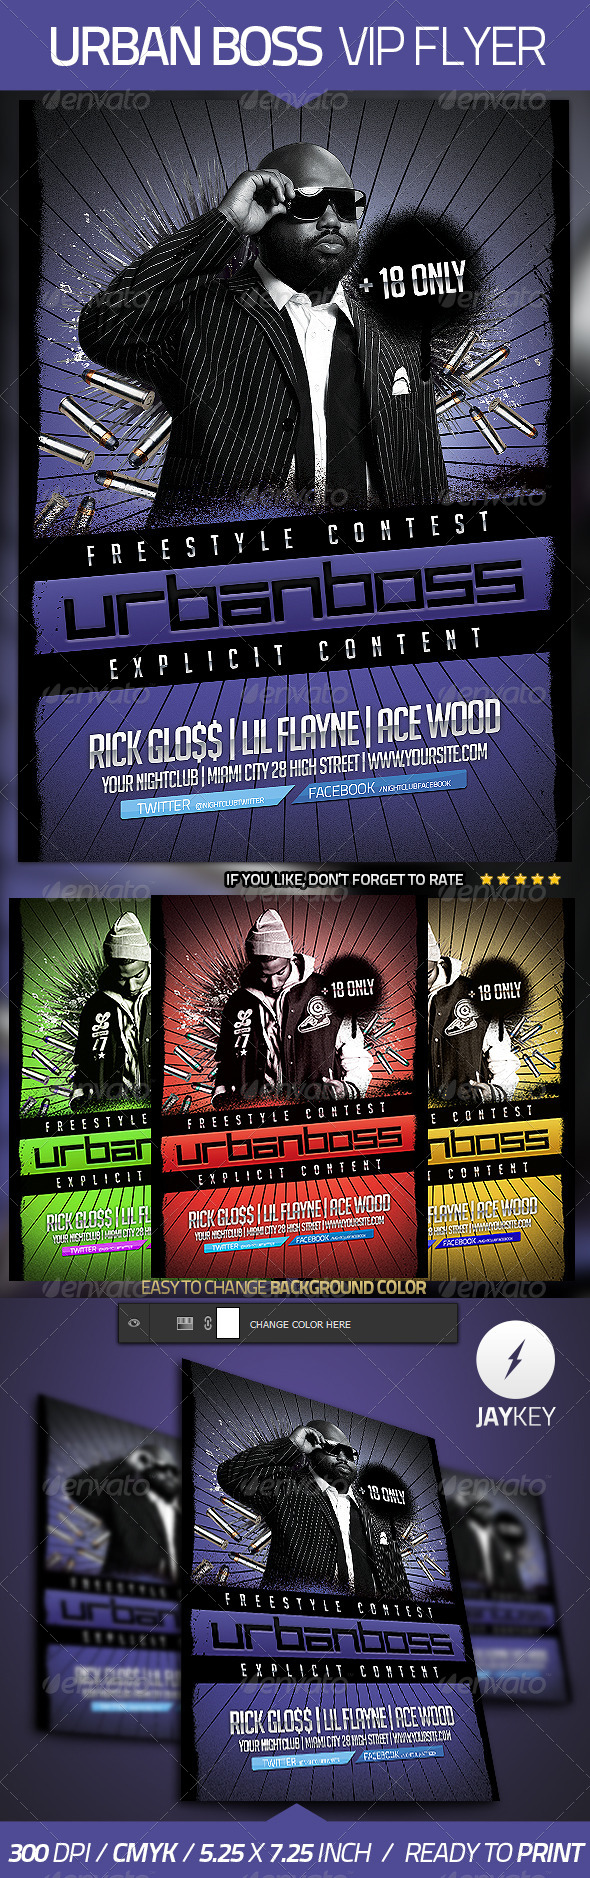 Urban Boss Flyer Template